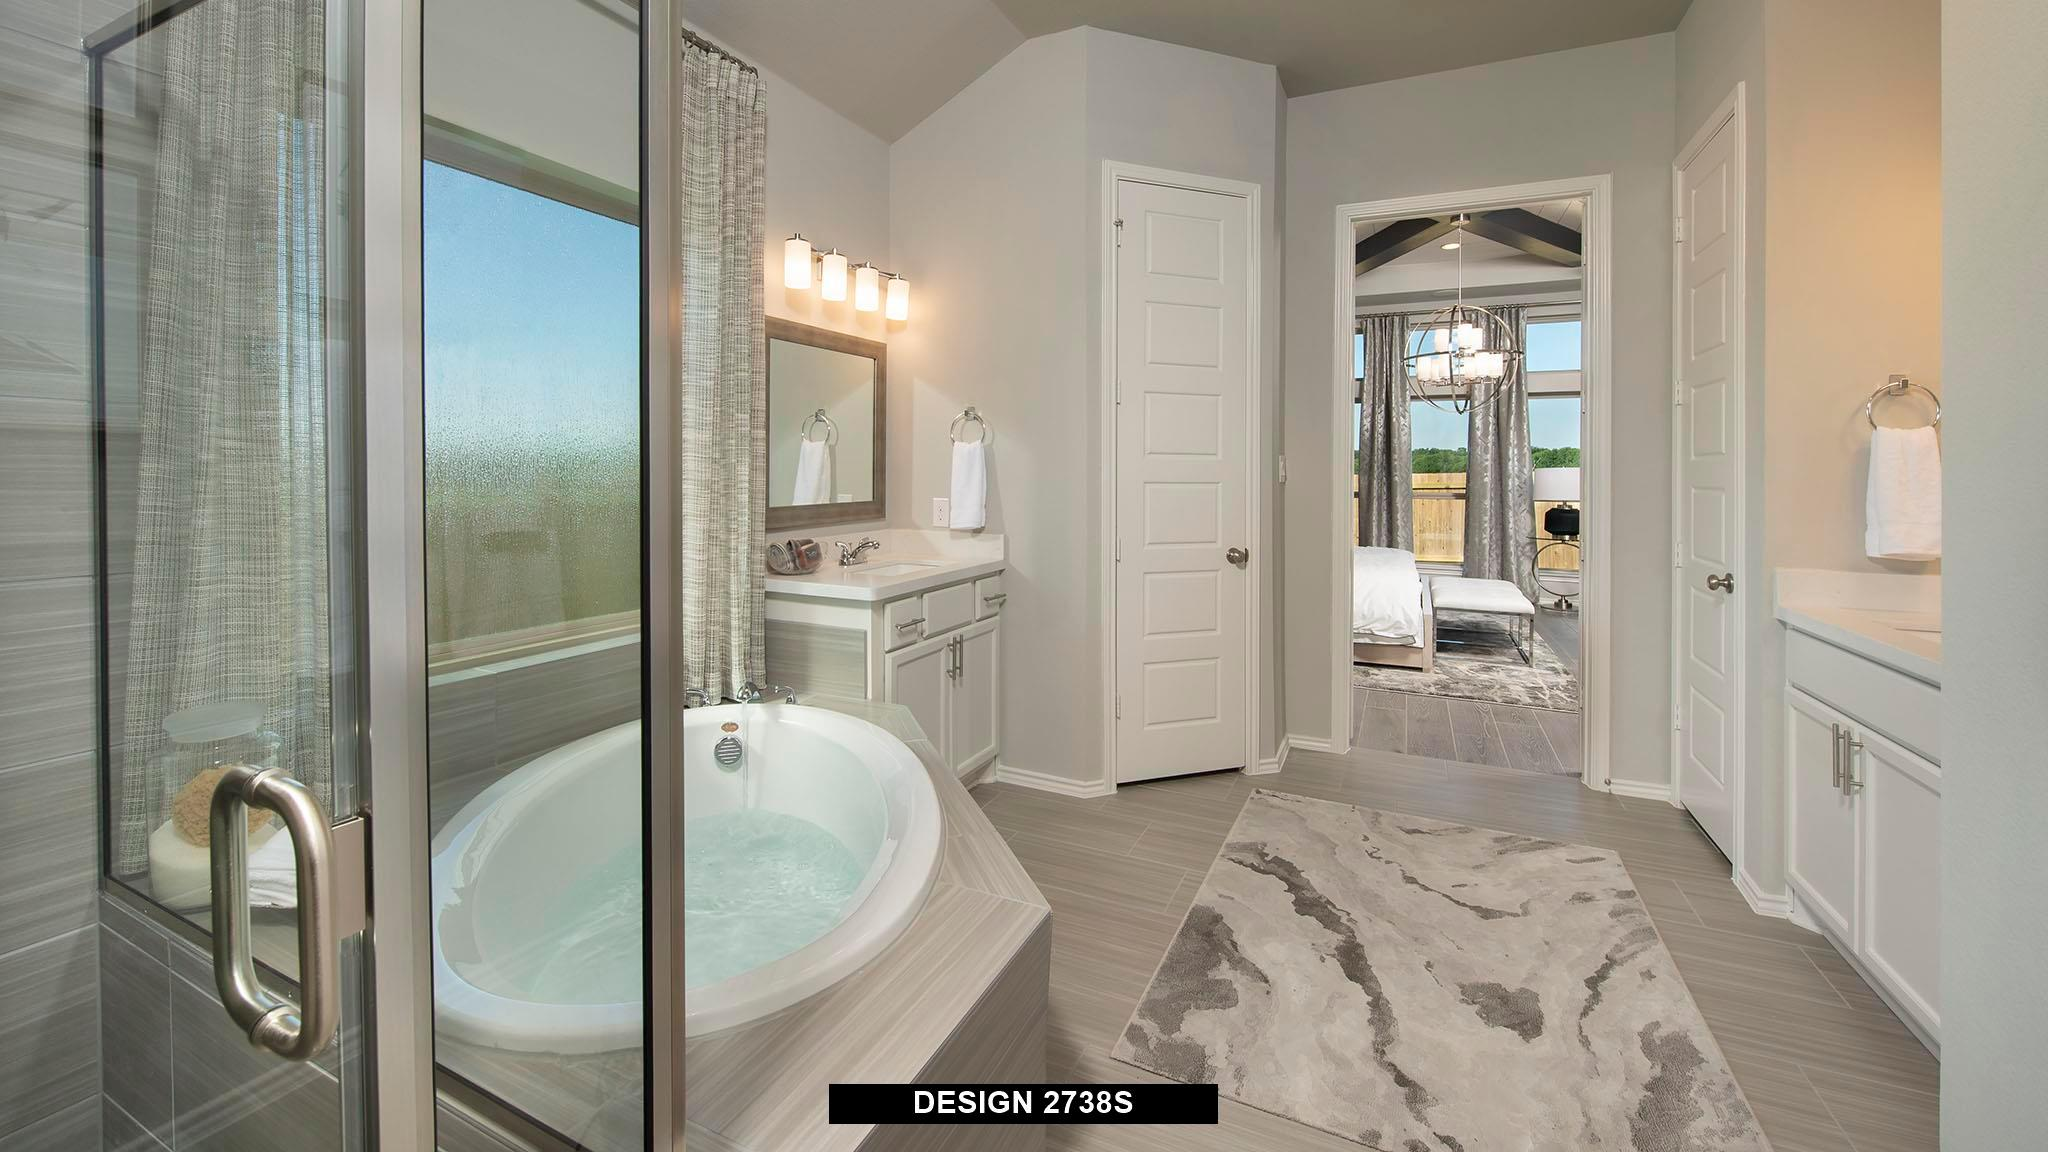 Bathroom featured in the 2738S By Perry Homes in San Antonio, TX